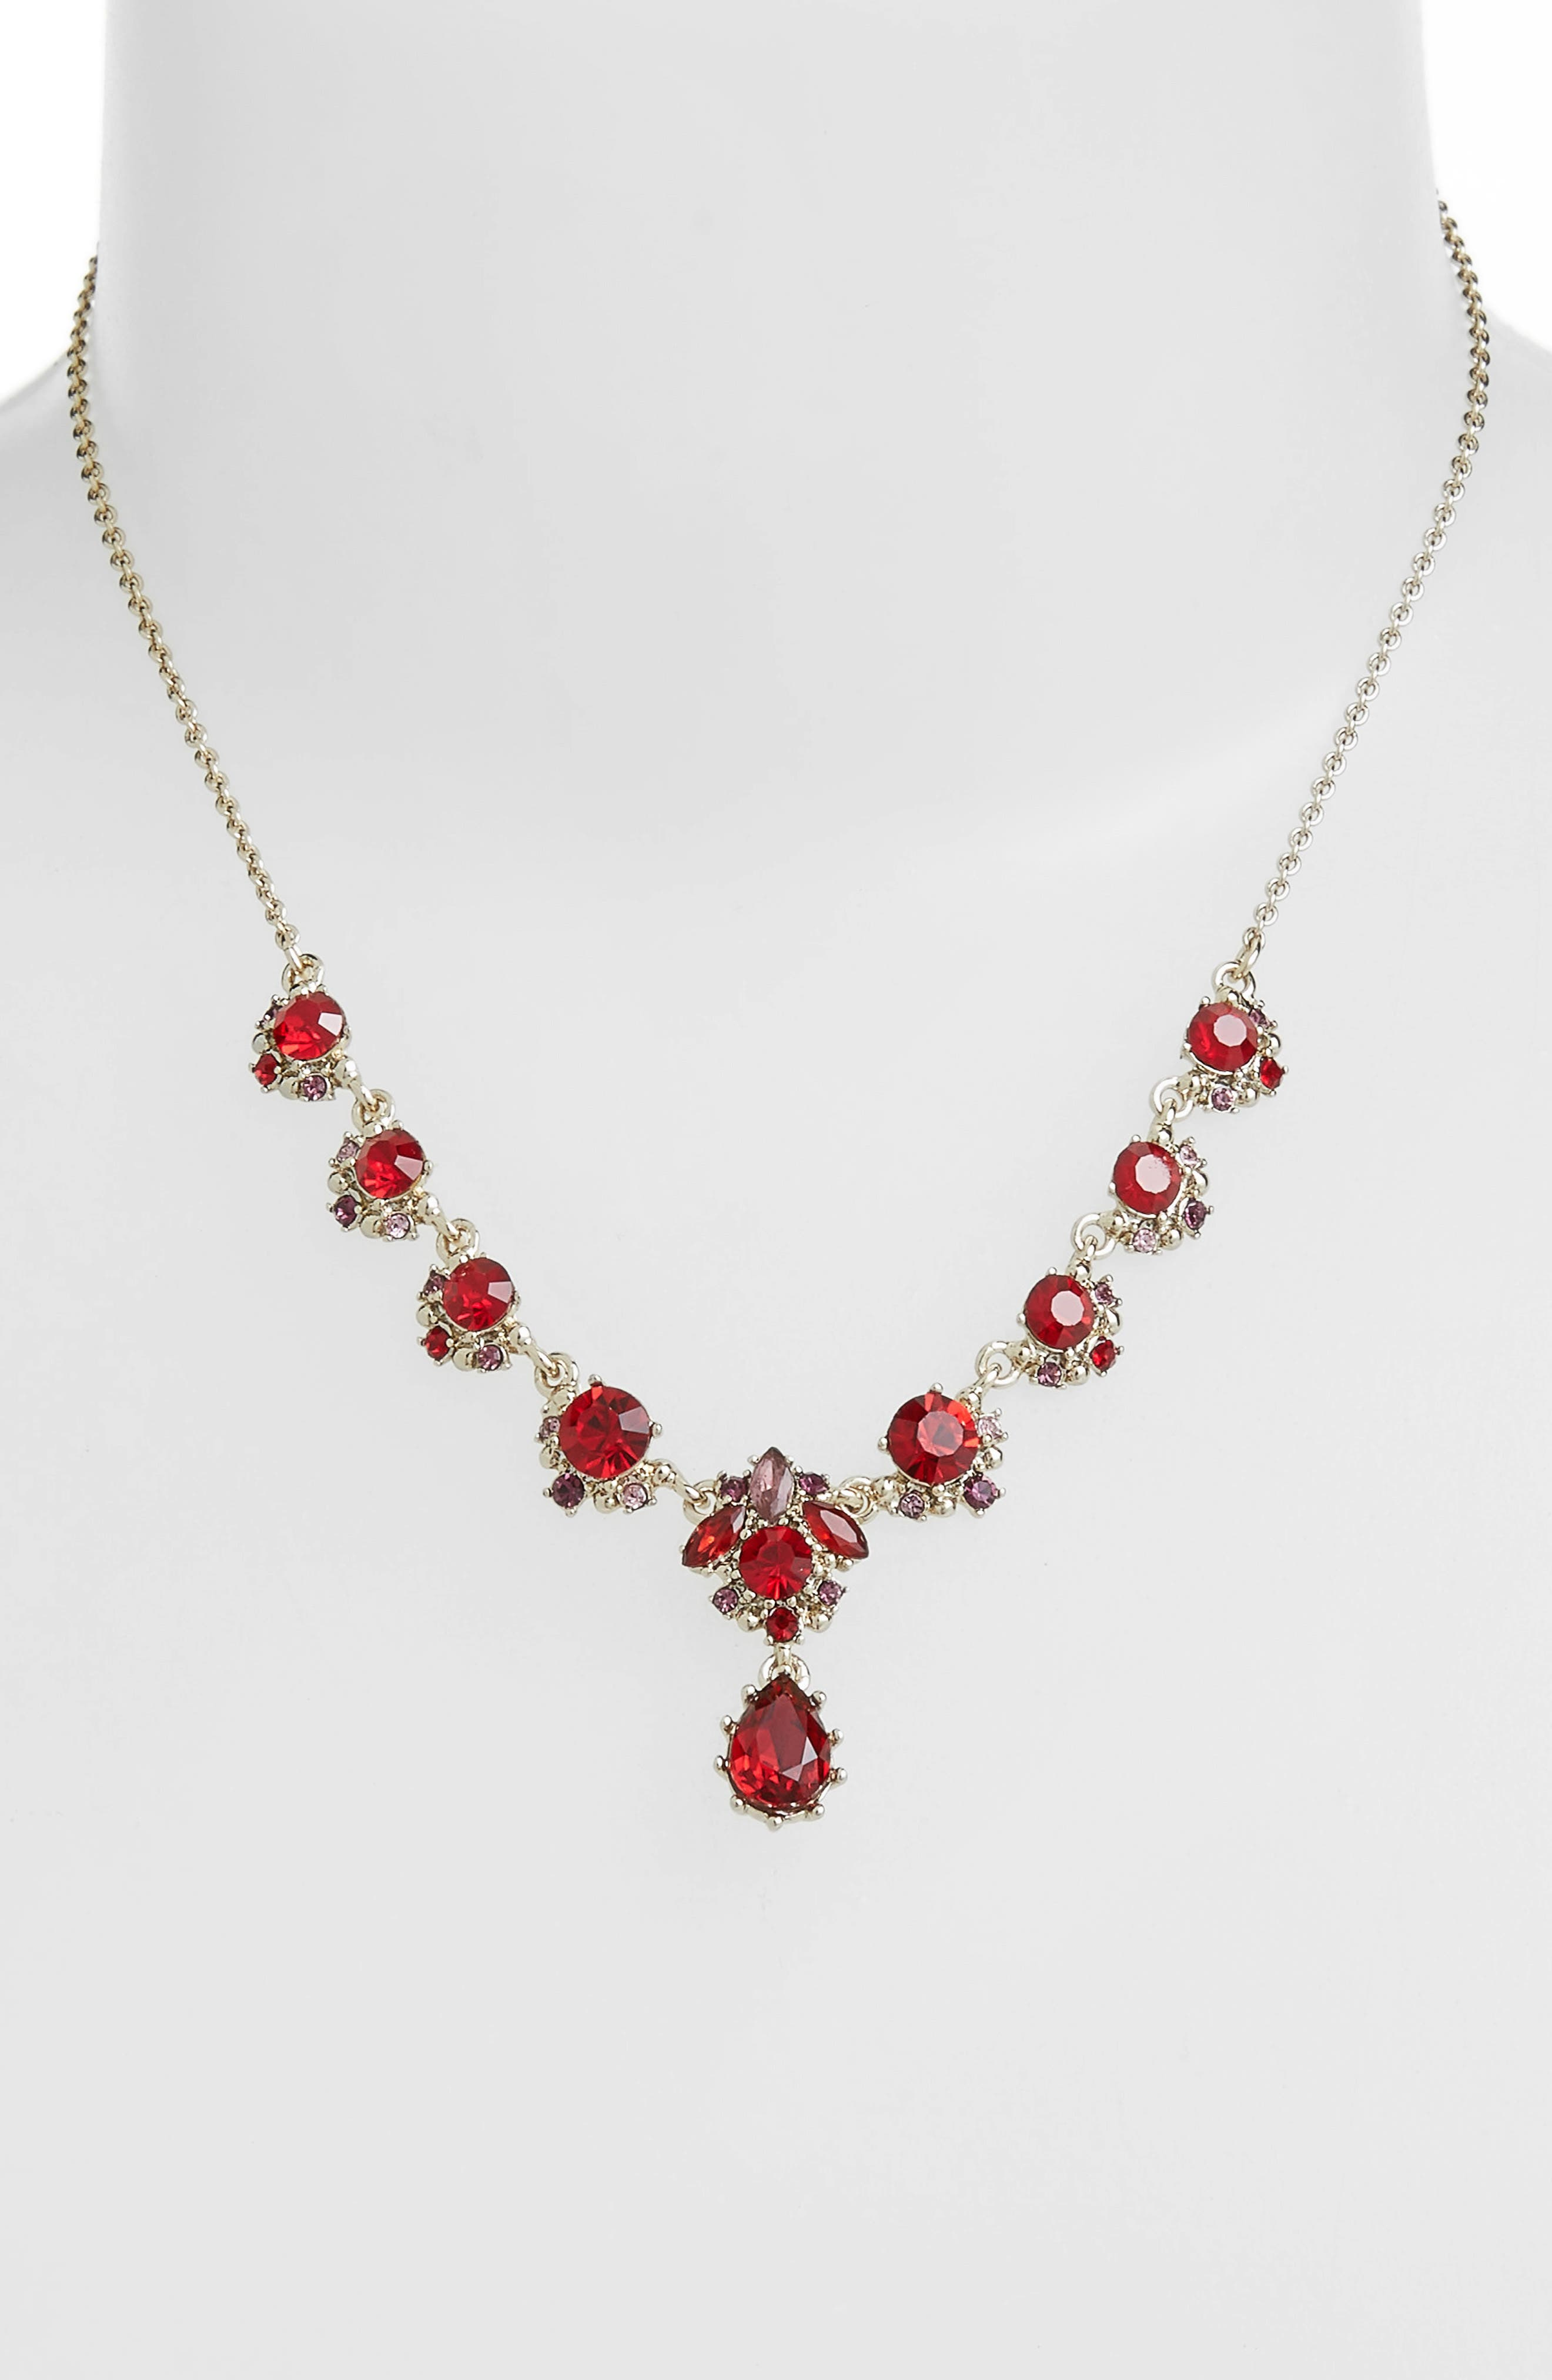 MARCHESA, Crystal Y-Necklace, Alternate thumbnail 2, color, RED MULTI/ GOLD